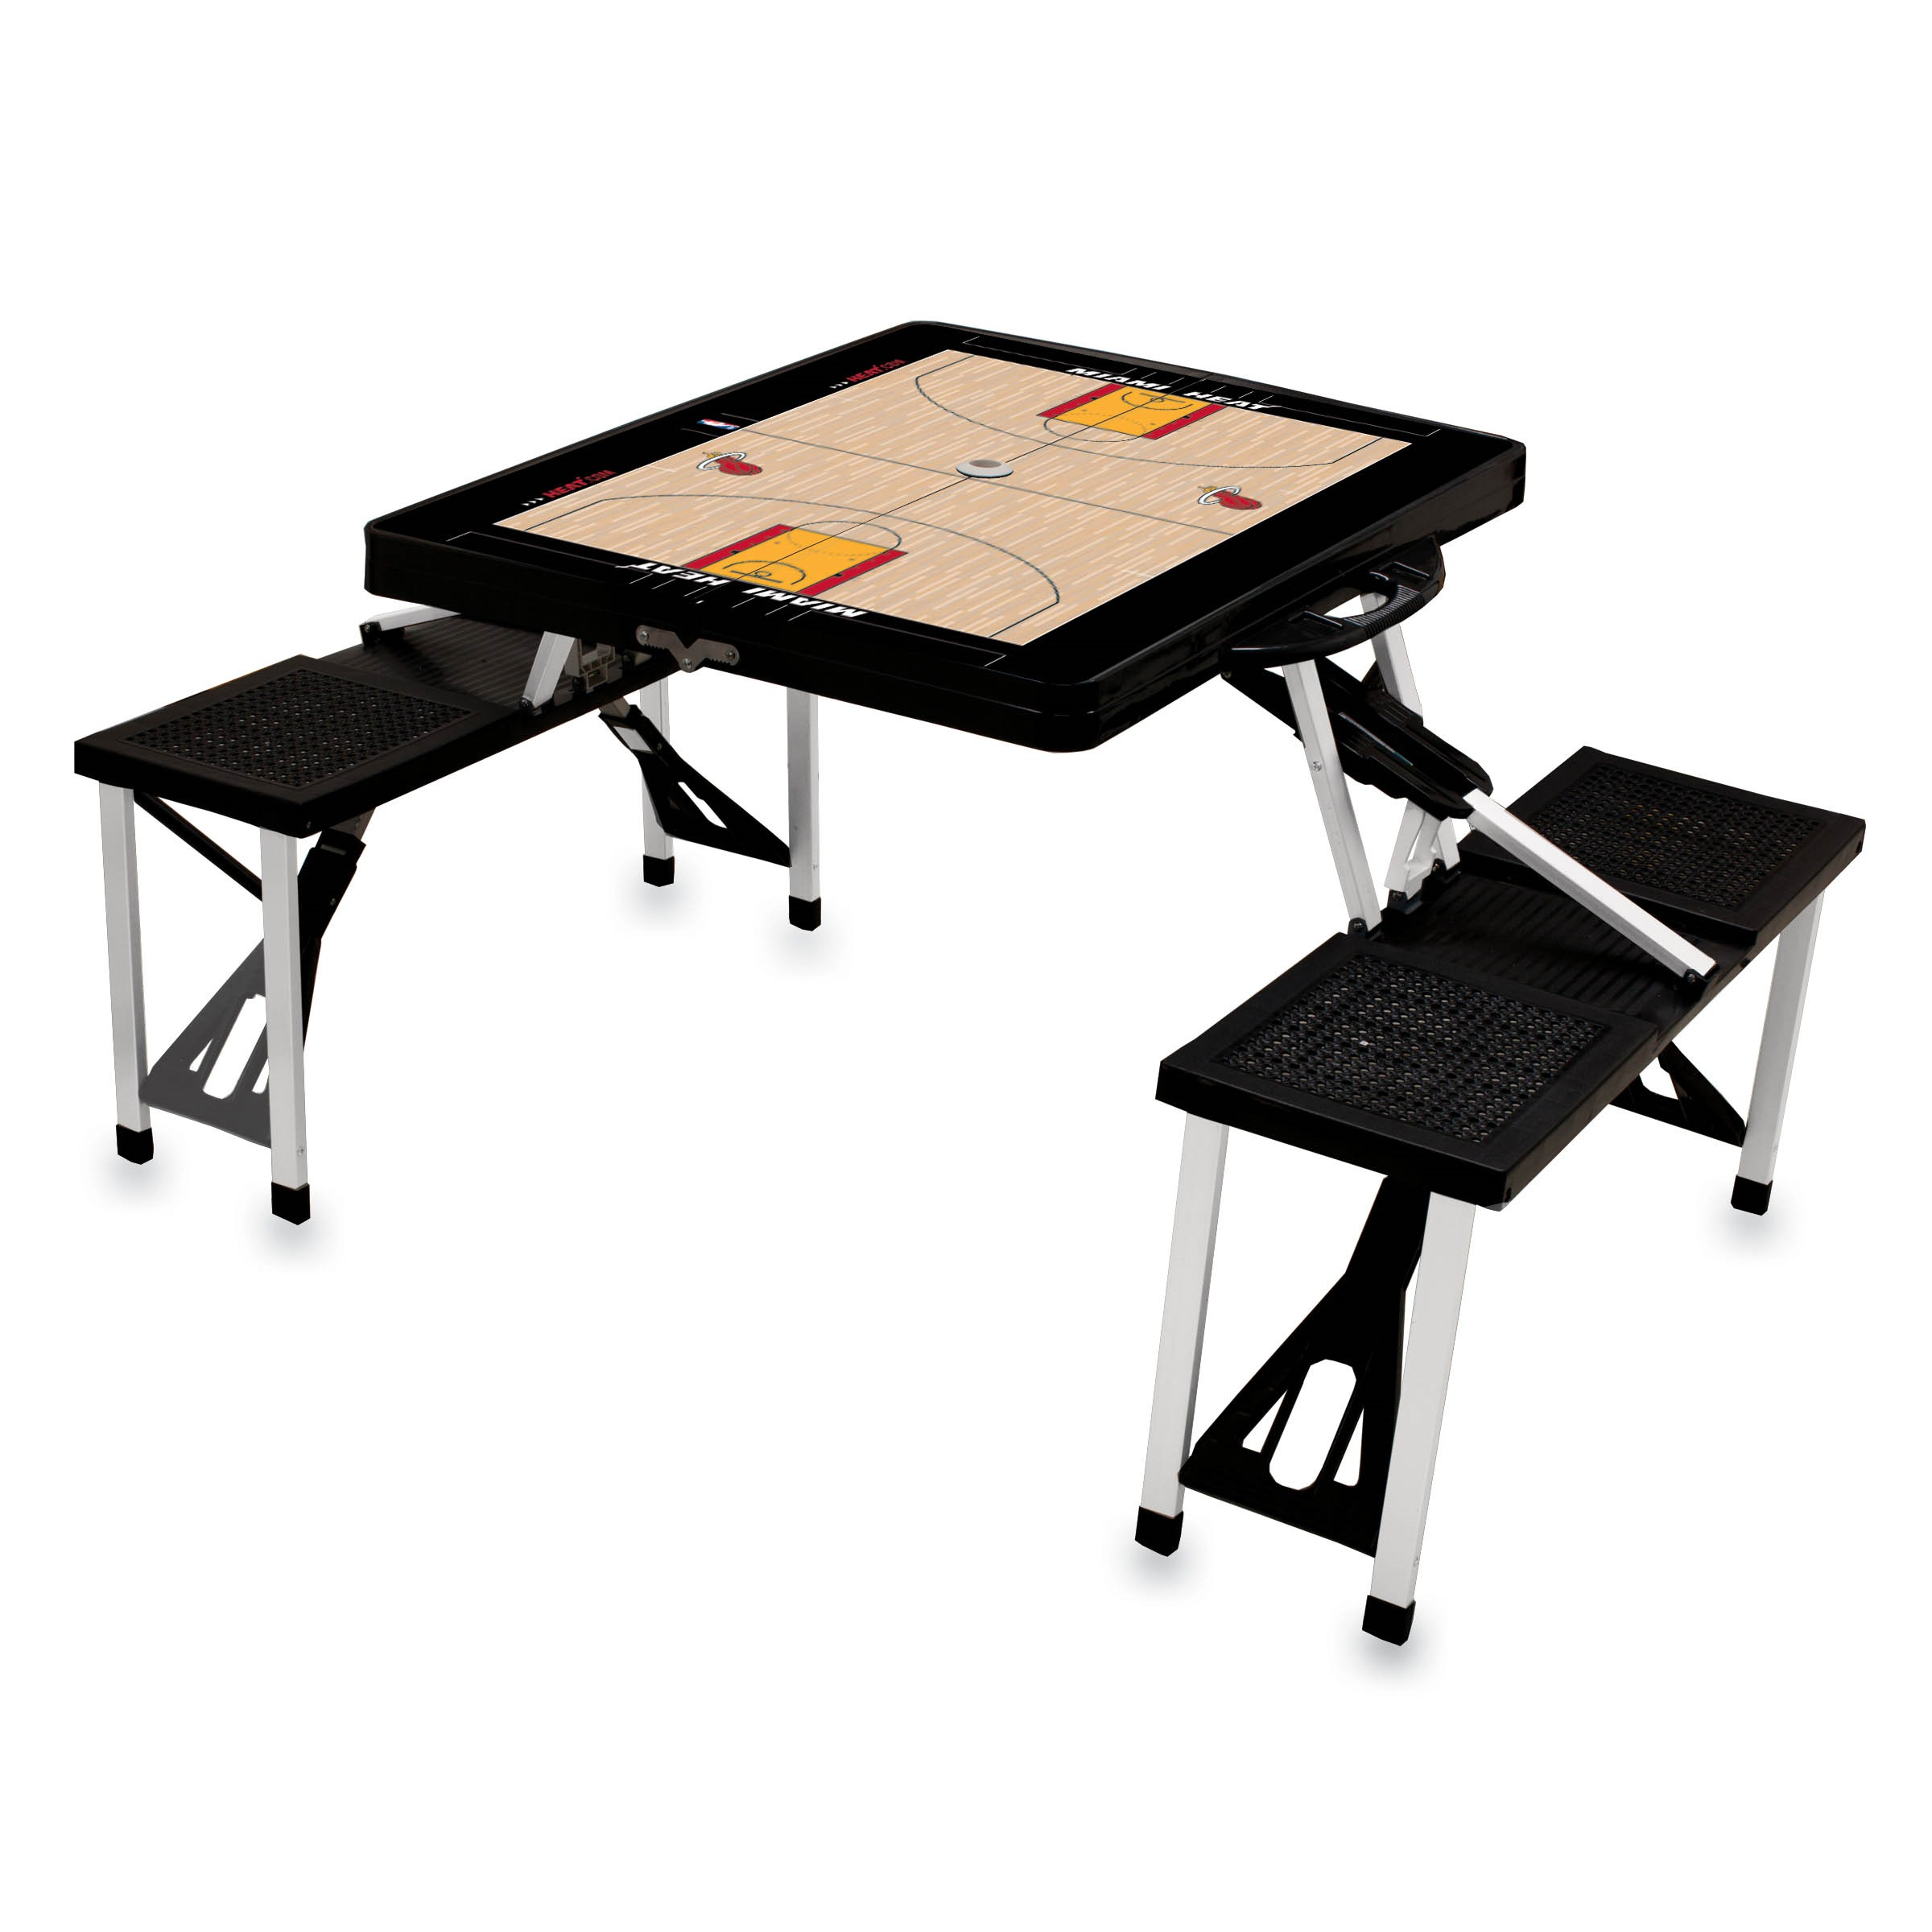 Picnic Time Nba Picnic Table Sport Miami Heat